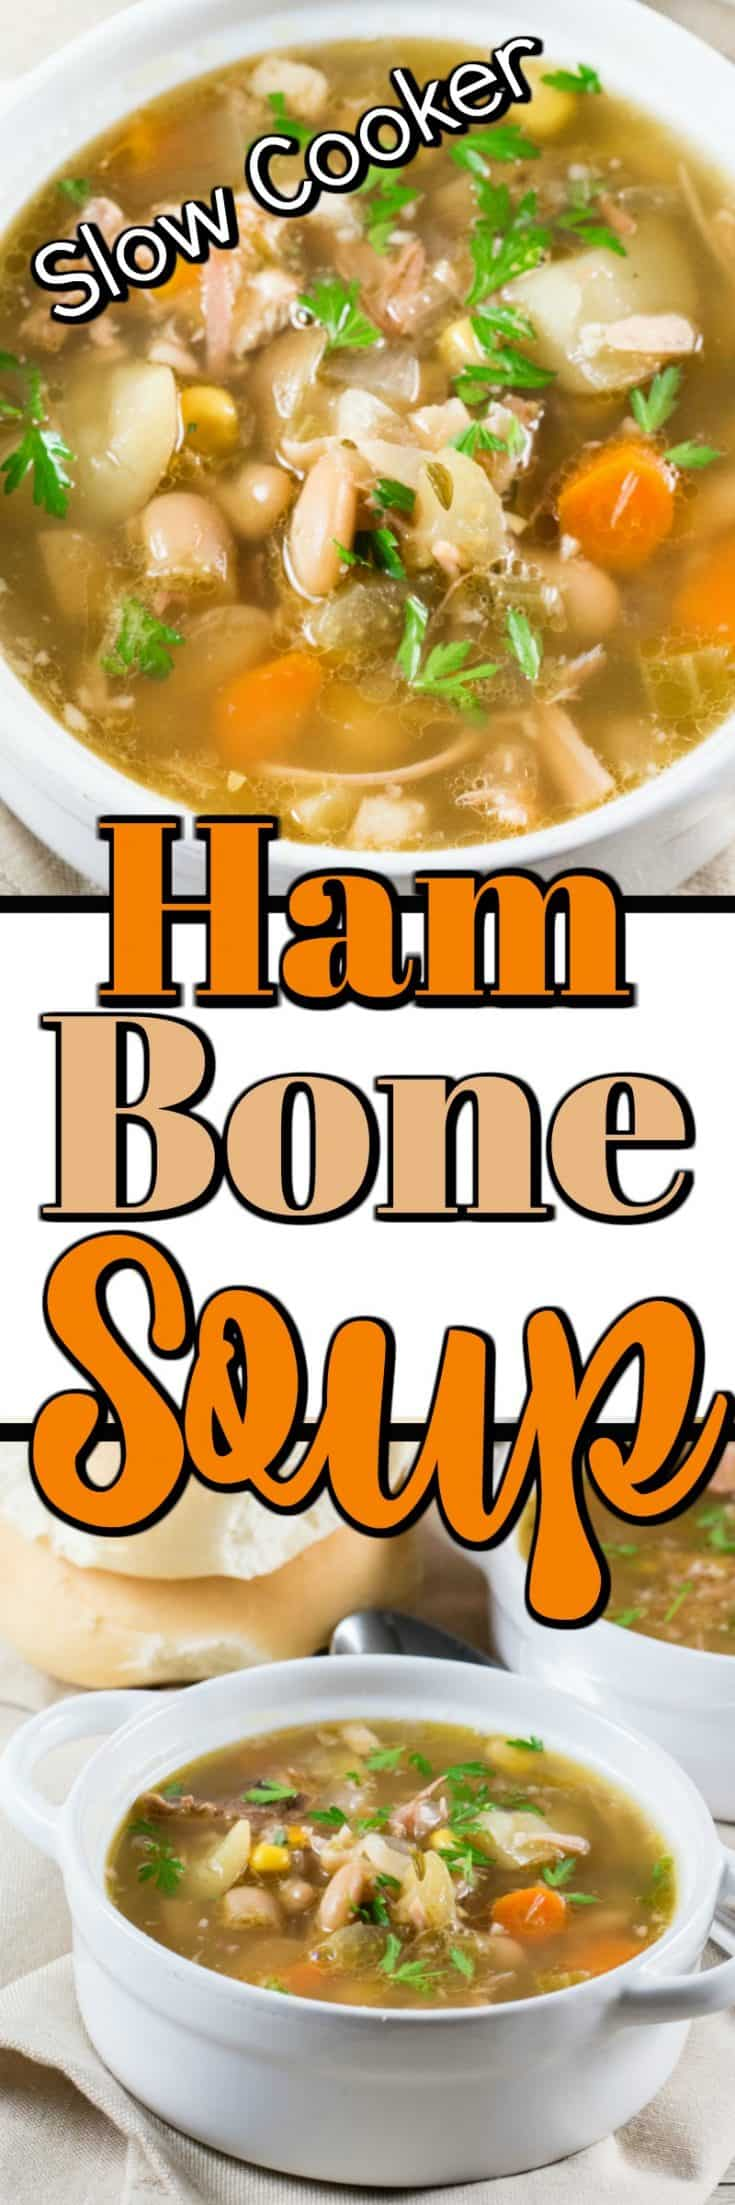 Ham Bone Soup (Slow Cooker) is slowly cooked with garlic, potatoes, carrots, celery, corn and beans to give you a comforting soup and use that leftover ham bone!! #hambone #ham #soup #slowcooker